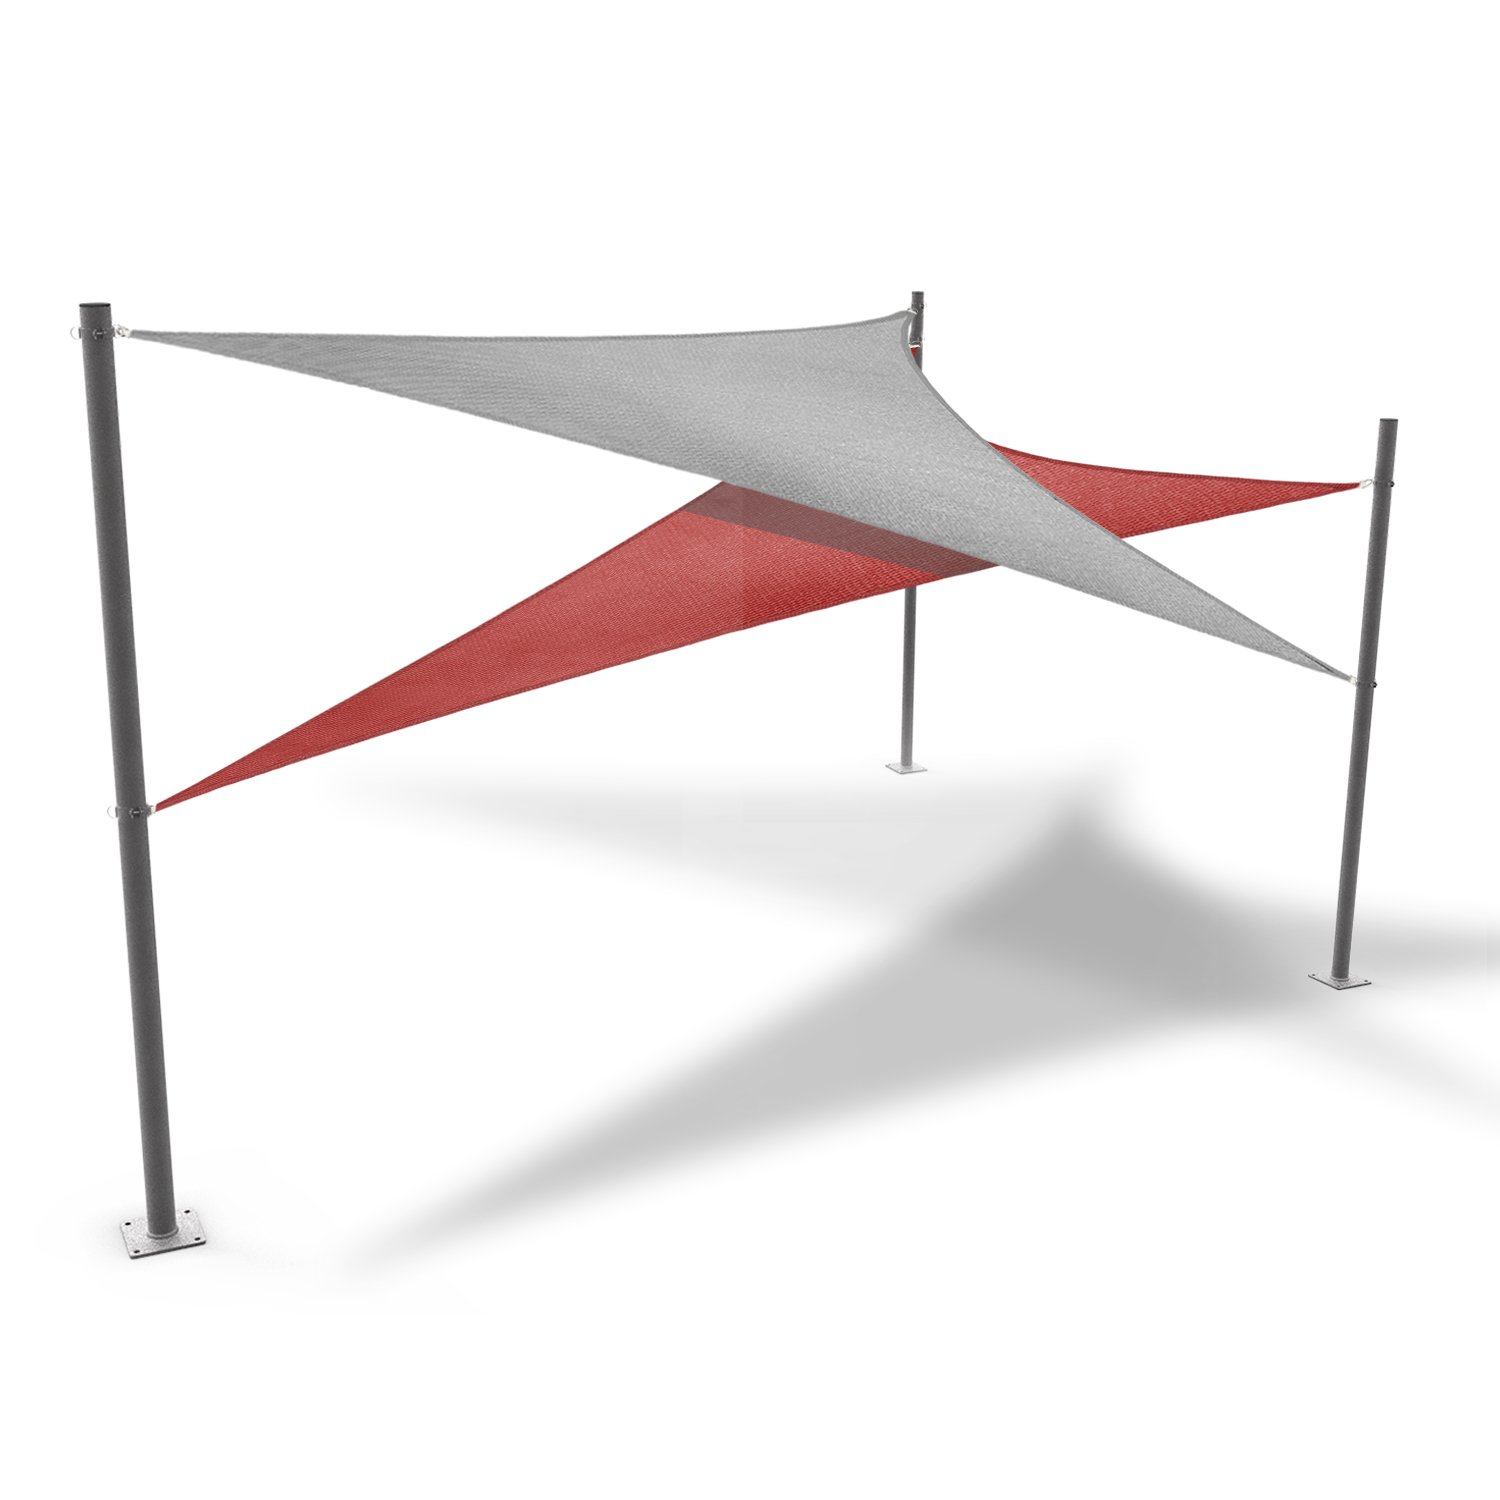 Windscreen4less 96'' Sun Shade Sail Pole,Knitted Shade Sail Stand Post,Awning Support Poles,Canopy support poles,Strengthen,Heavy-duty support-steel - gray by Windscreen4less (Image #6)